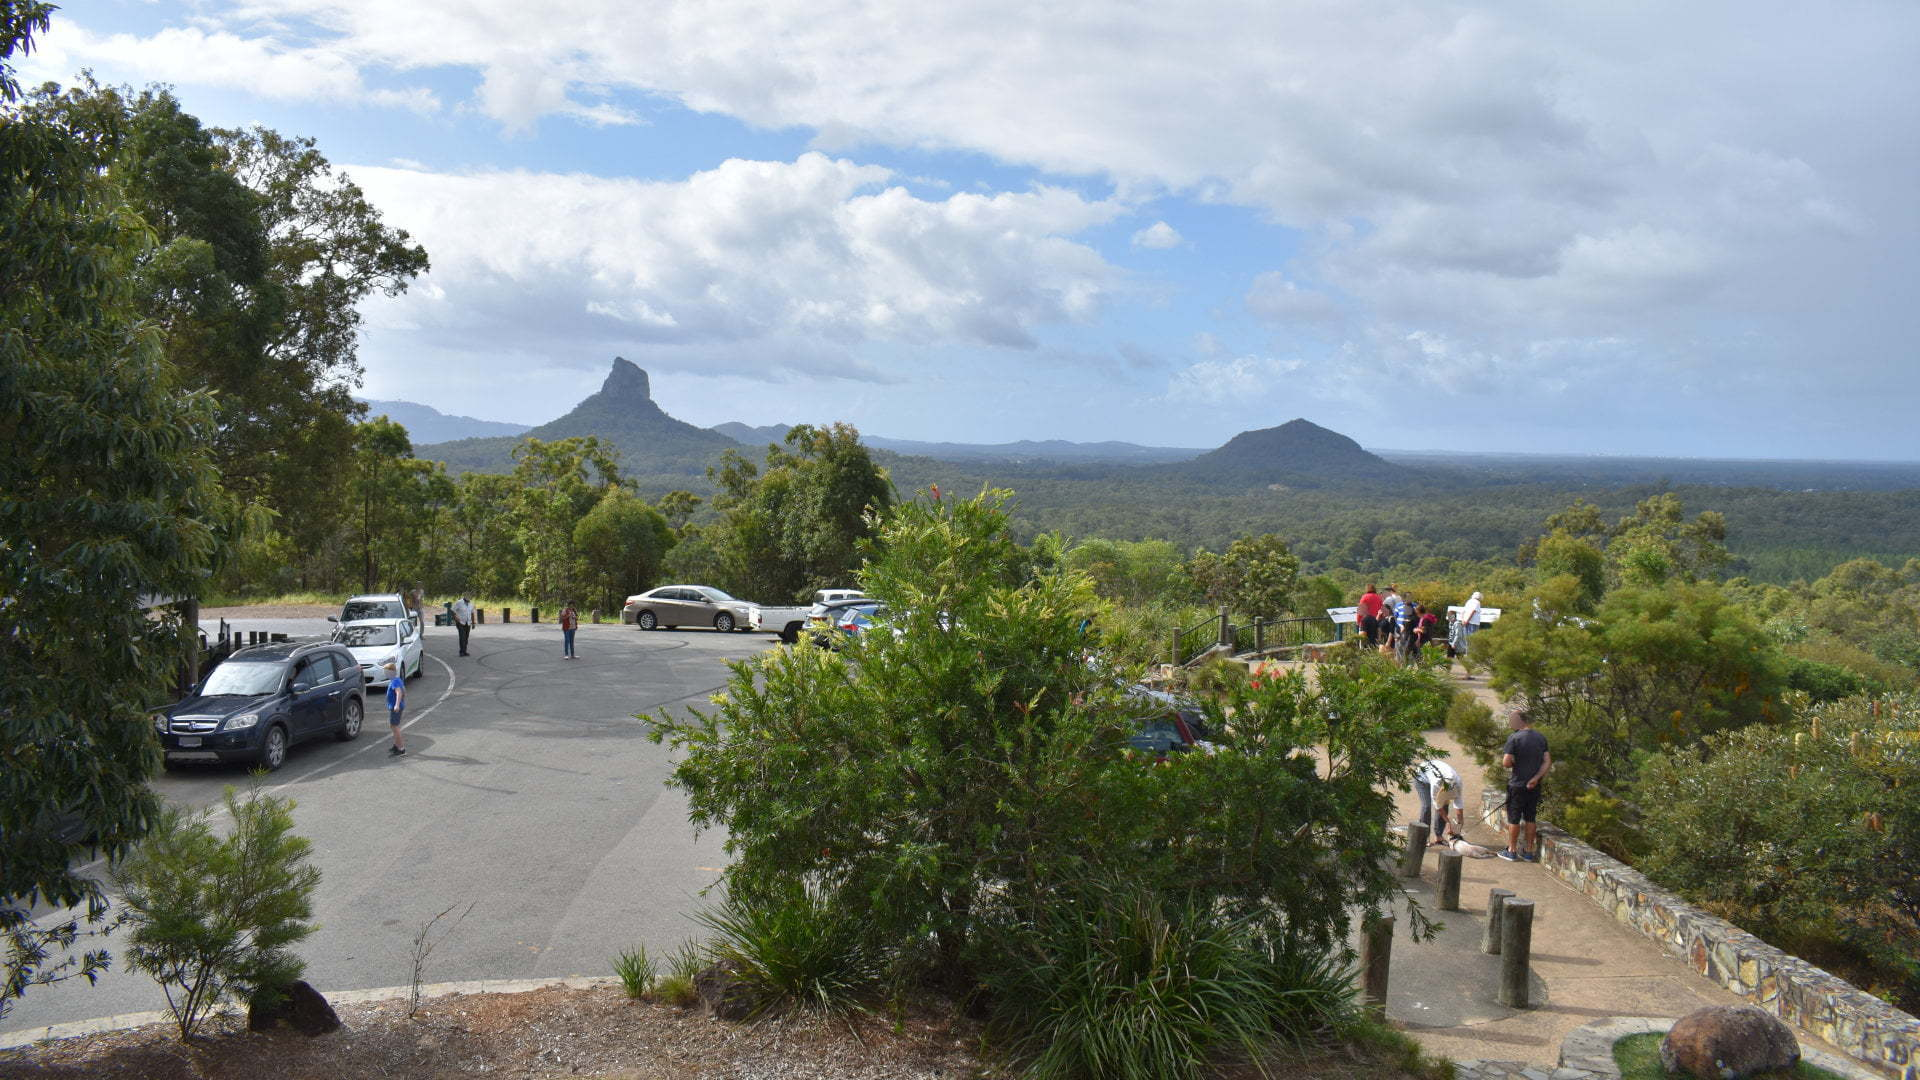 View from the rotunda at The Glass House Mountains Lookout, centrally located amongst the Glass House Mountains, offers views of many of the peaks from the one location.